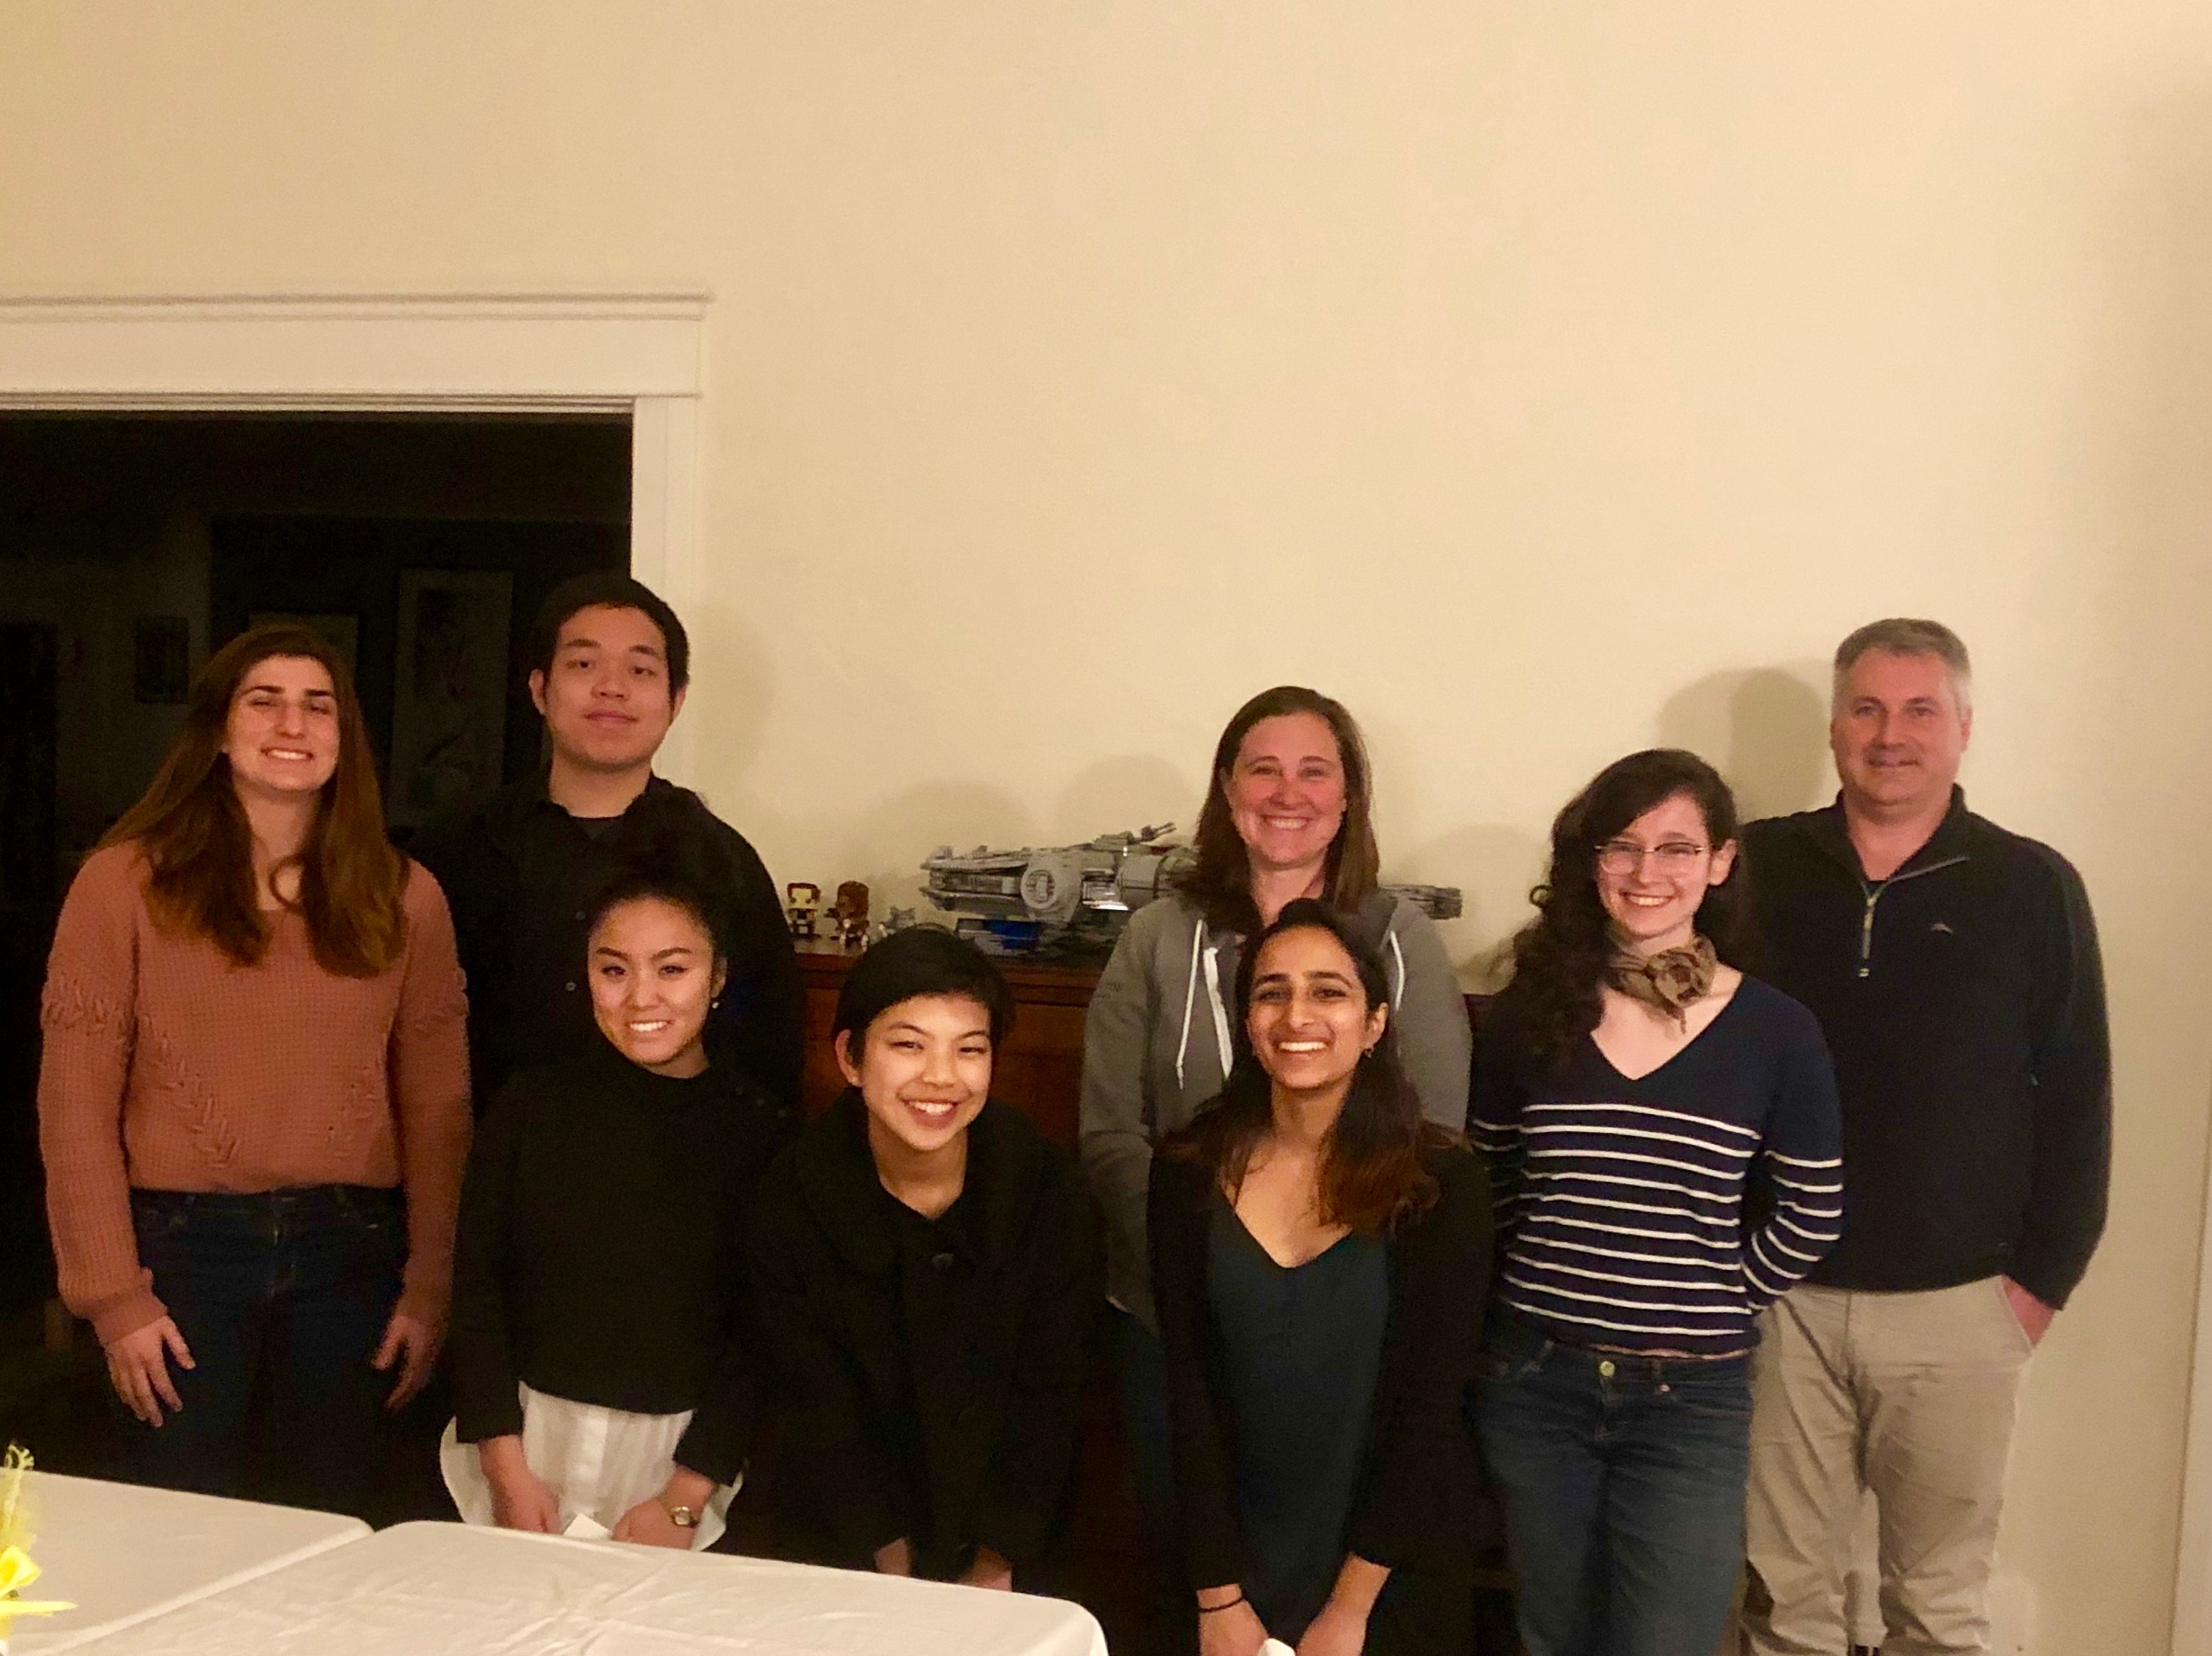 Chris (BS '95) and Jasmine Bryant (BS '95) hosted 6 undergraduate students for dinner at their home in Pasadena on Saturday, February 23, 2019.